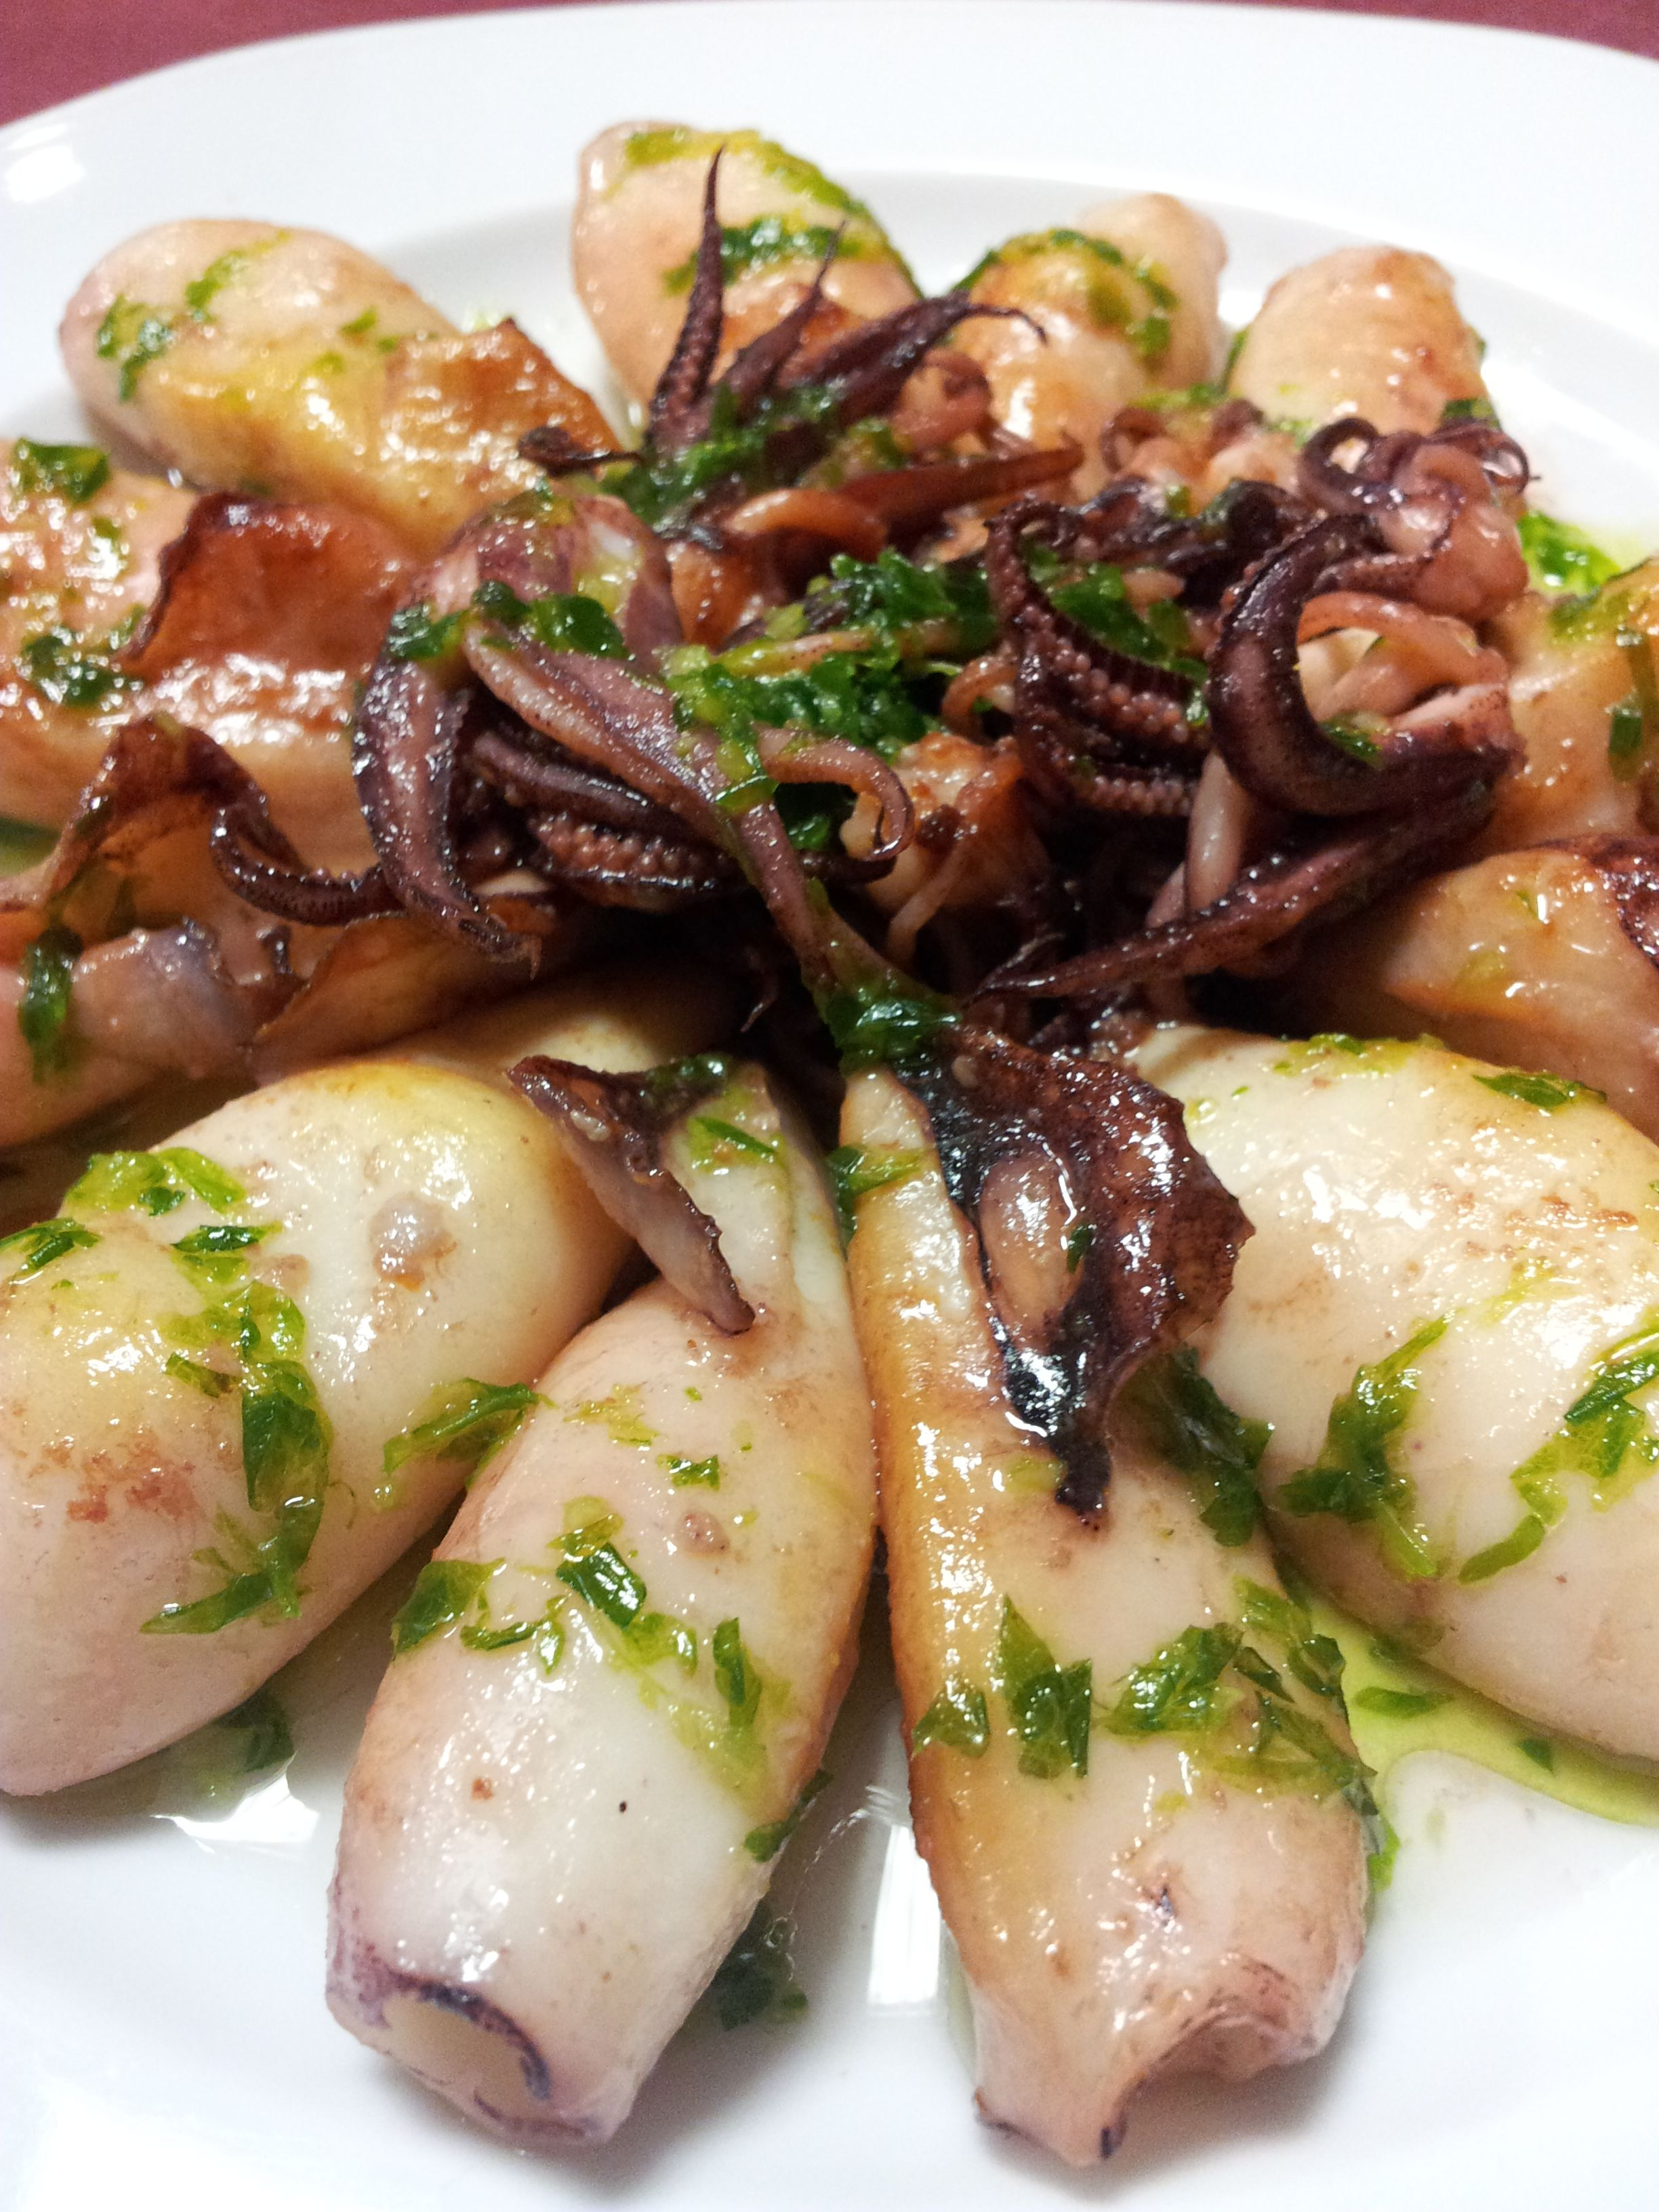 Superb Calamares A La Plancha Con Salsa Mery   For More Recipes Like This Visit  Our Website!